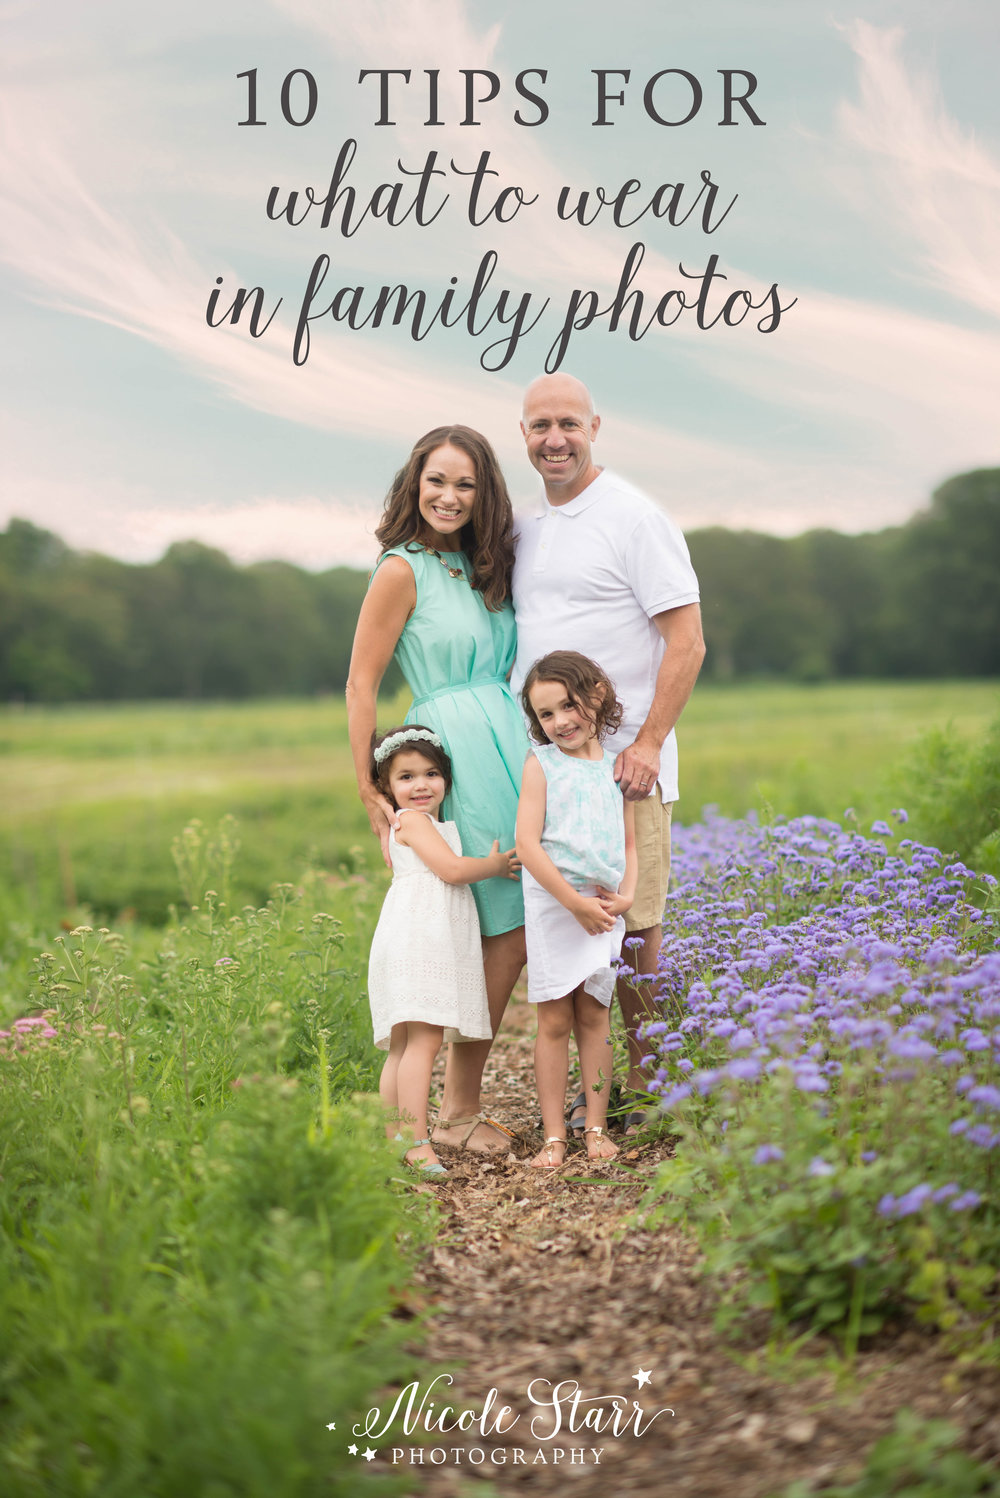 10 Tips for What to Wear in Family Photos, Nicole Starr Photography